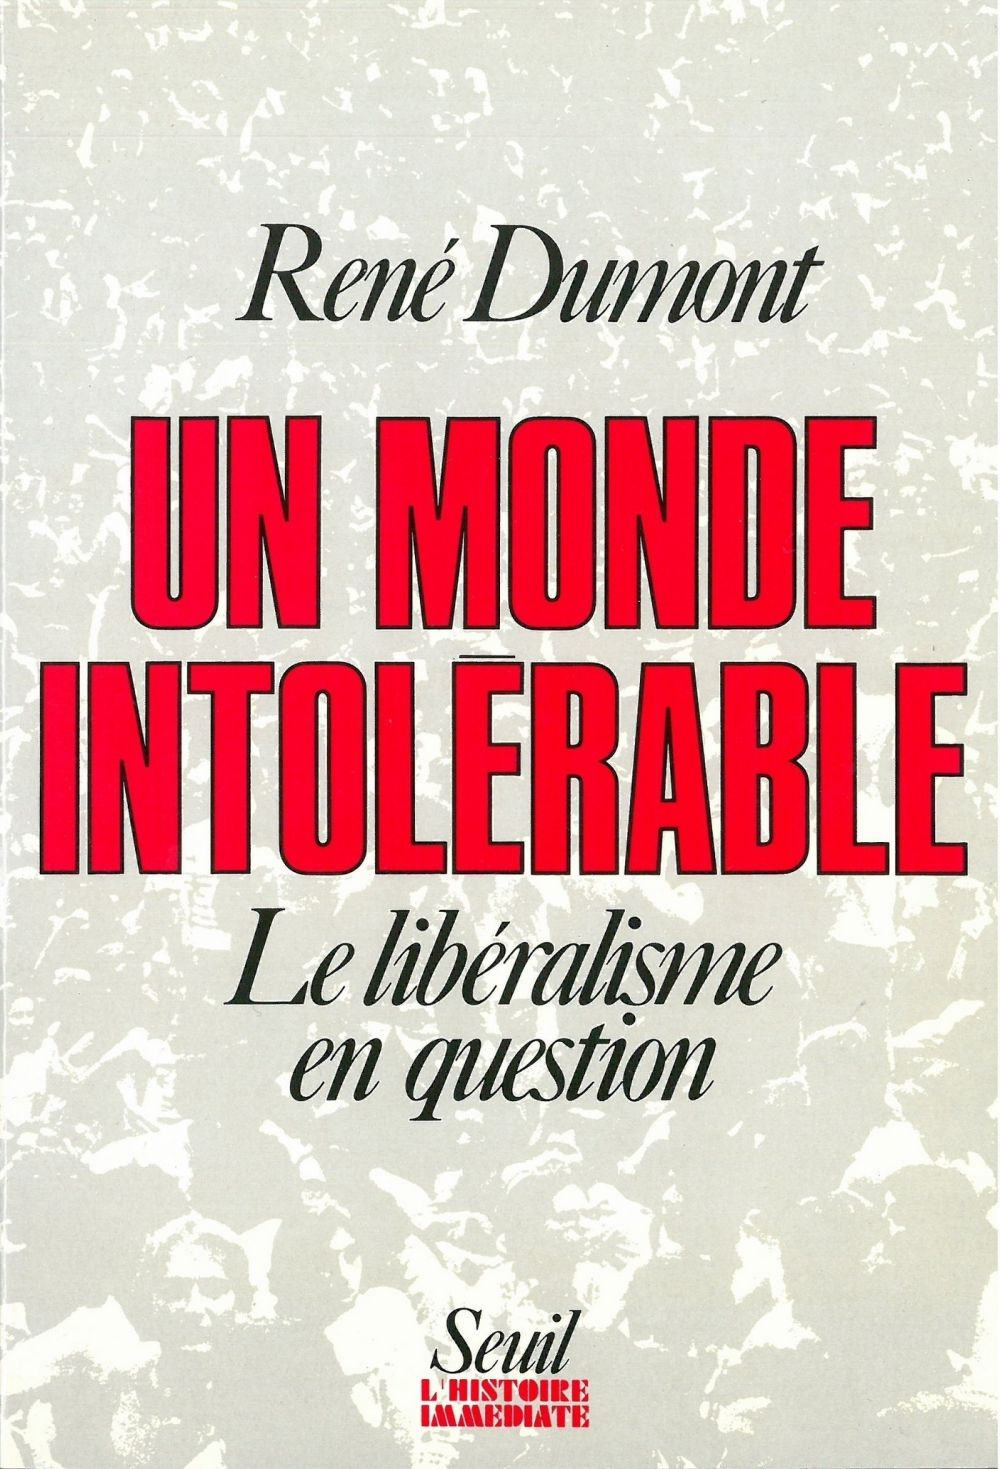 Un monde intolérable. Le libéralisme en question